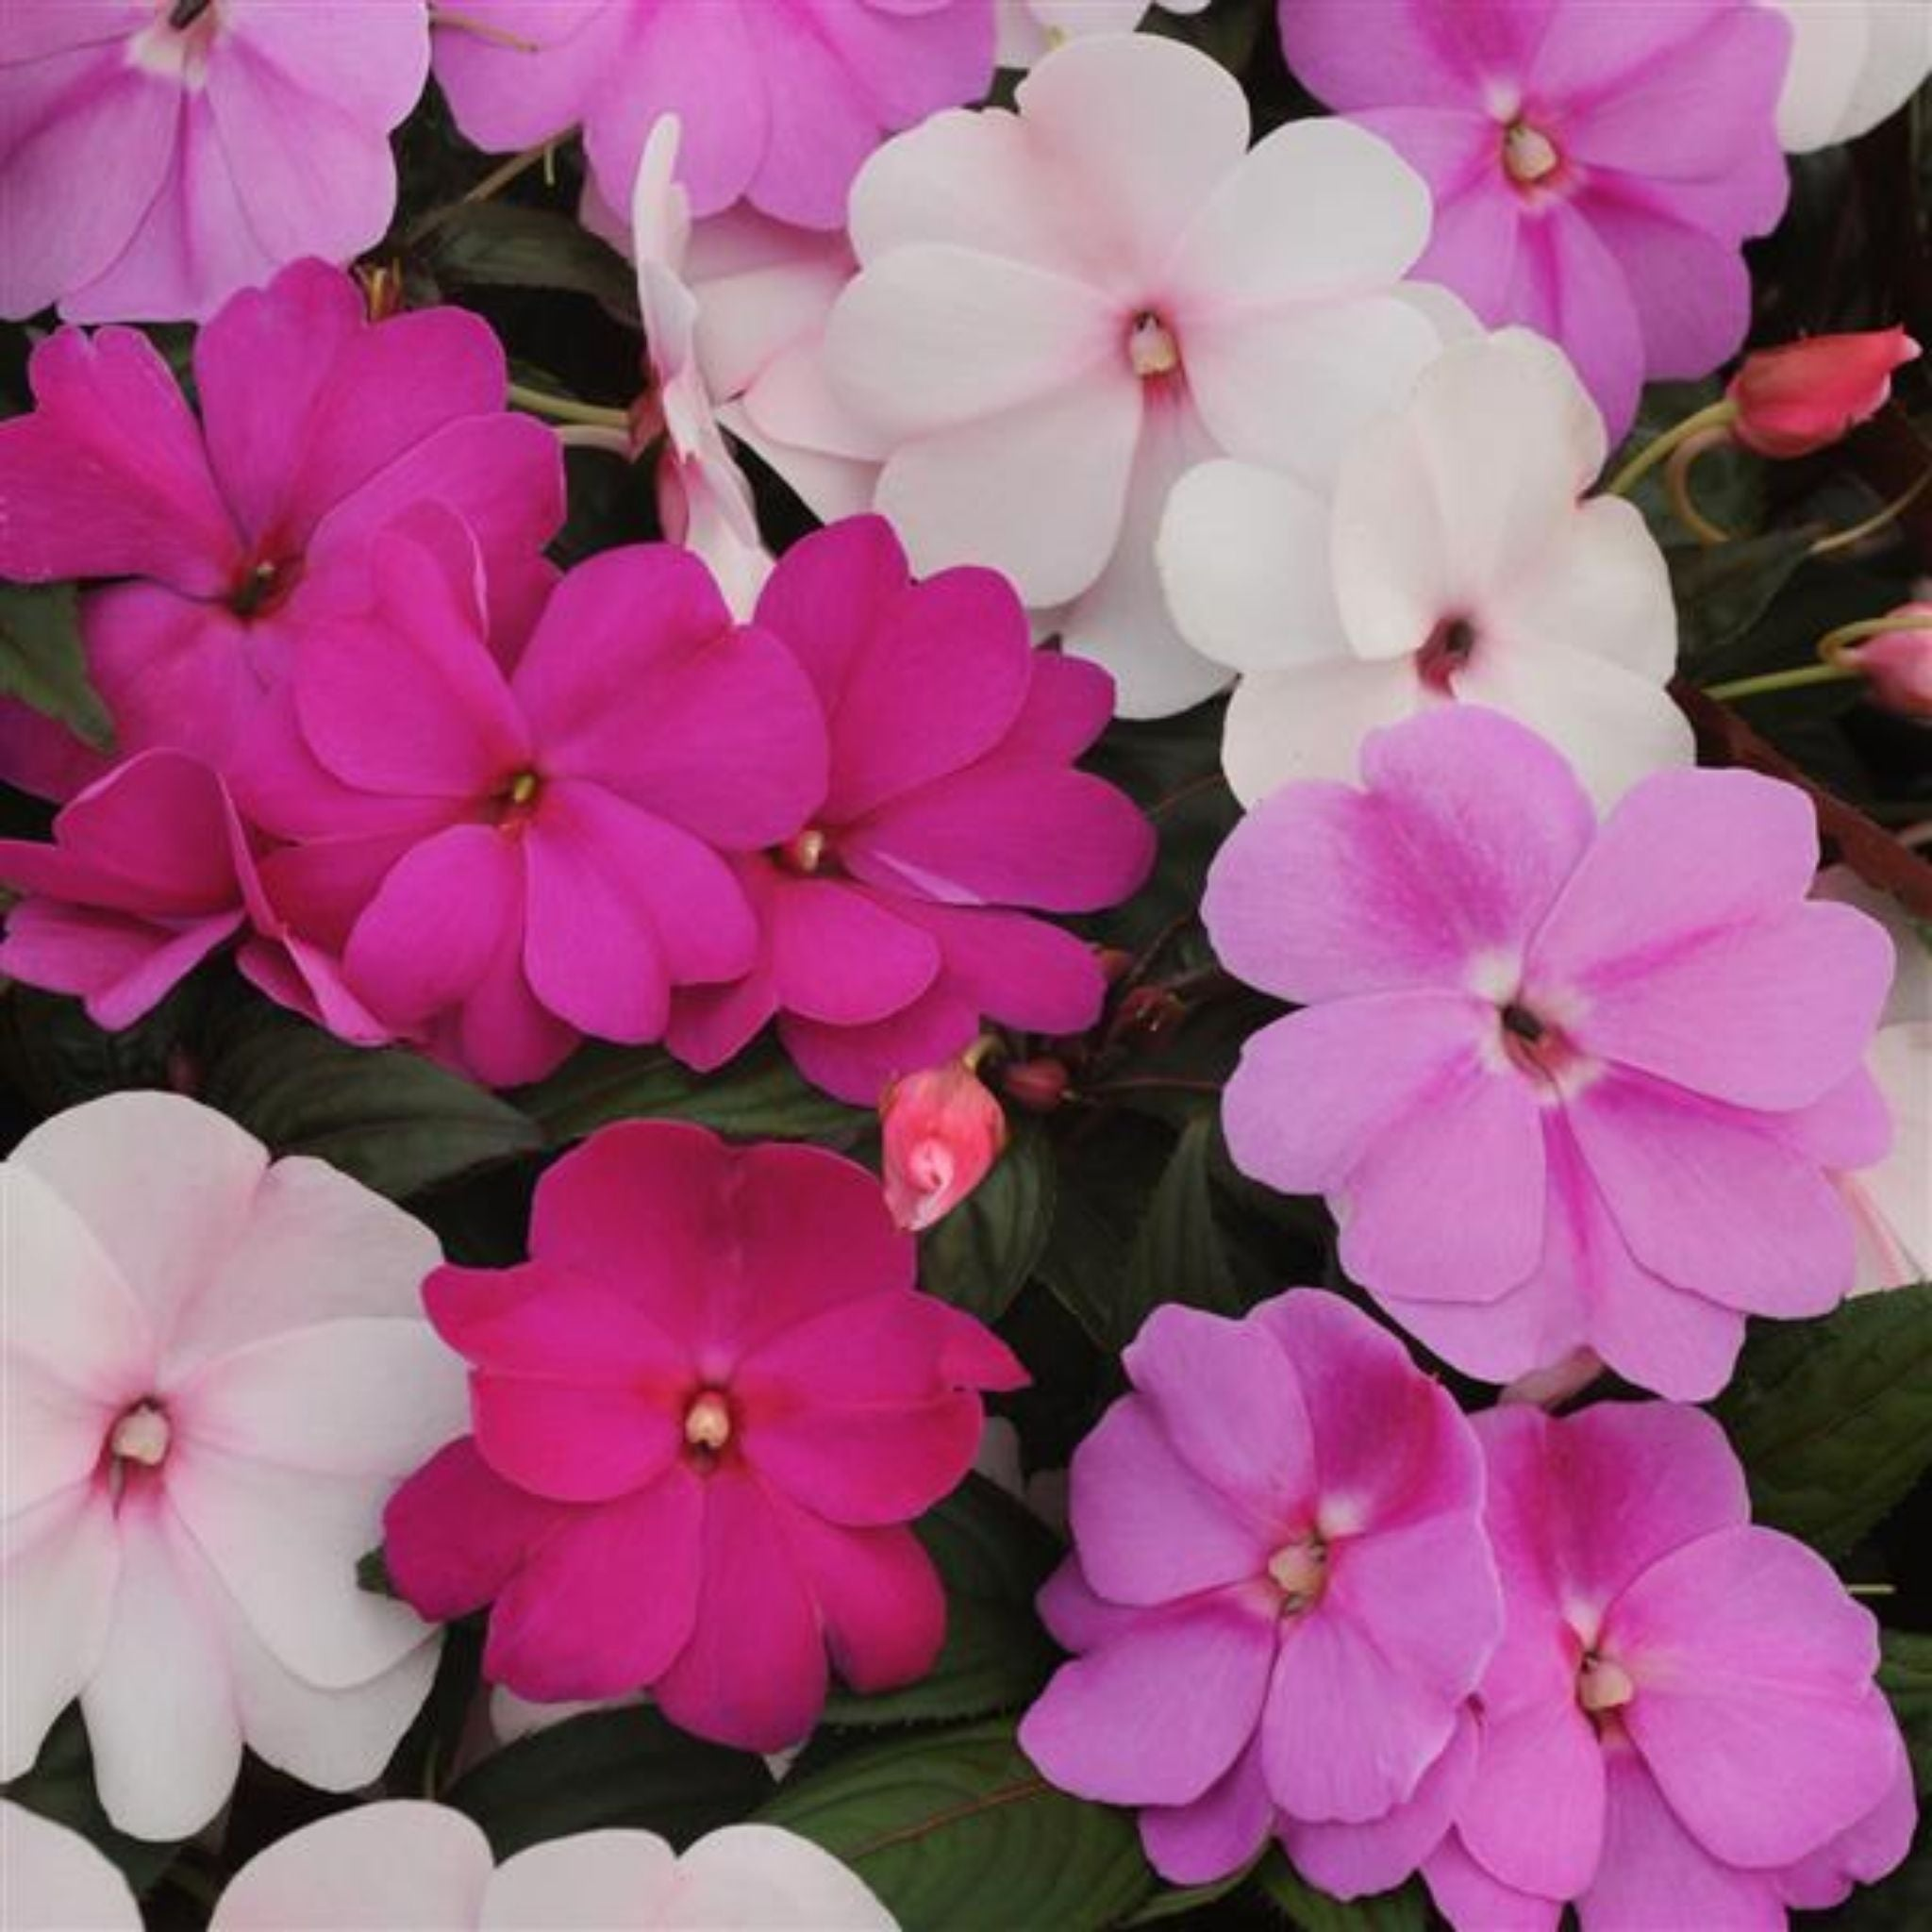 Impatiens (New Guinea) Flats for sale kollmans greenhouse twinsburg oh